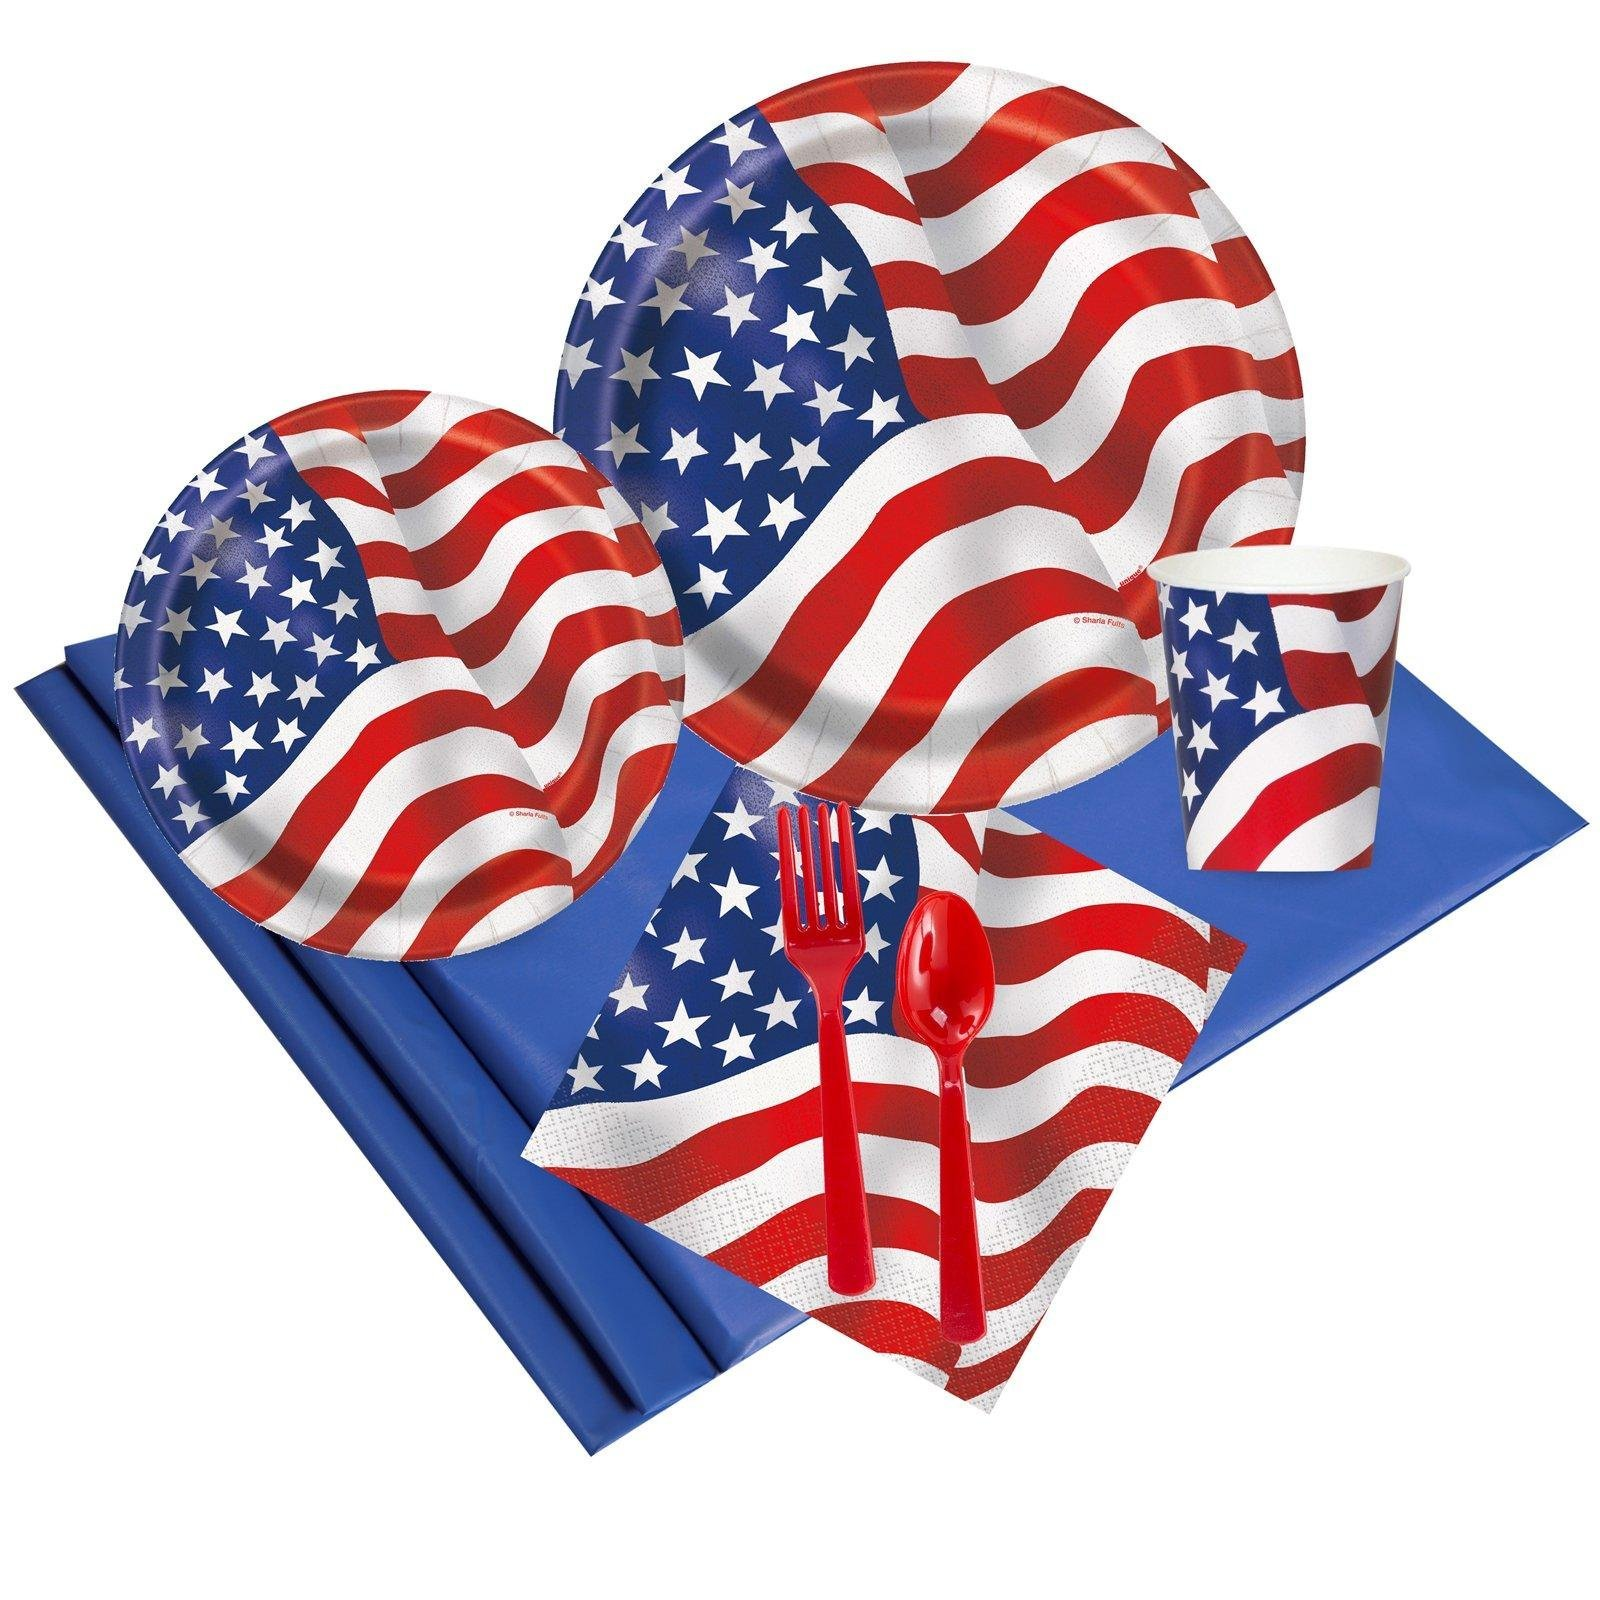 Patriotic USA Flag Party Supplies - Party Pack for 24 Guests by BirthdayExpress